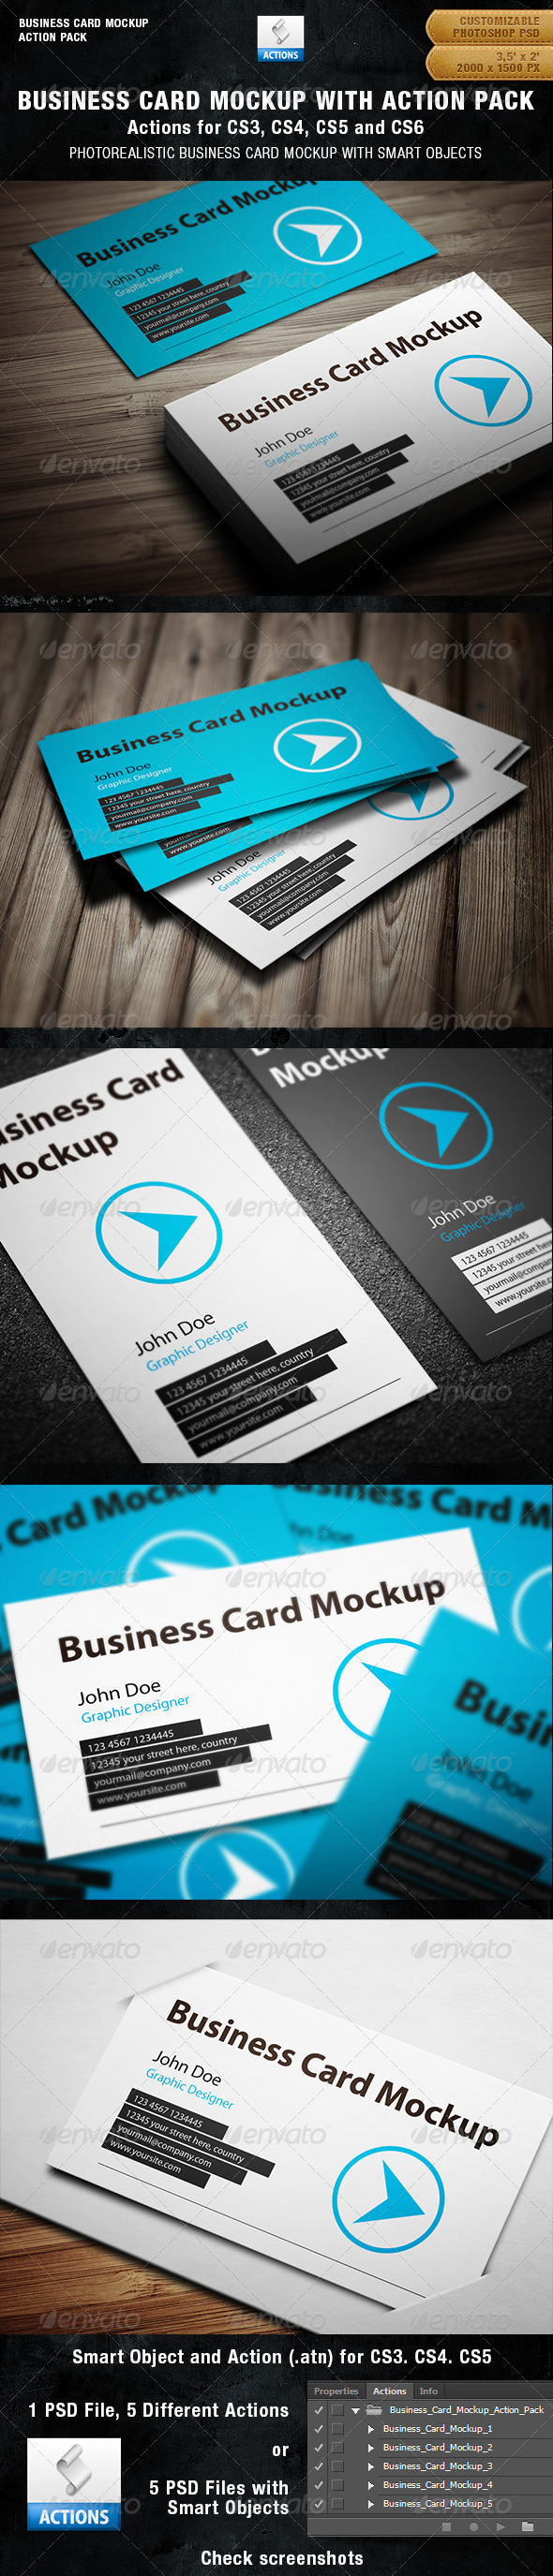 Business card mockup with actions pack by bluemonkeylab graphicriver business card mockup with actions pack reheart Images